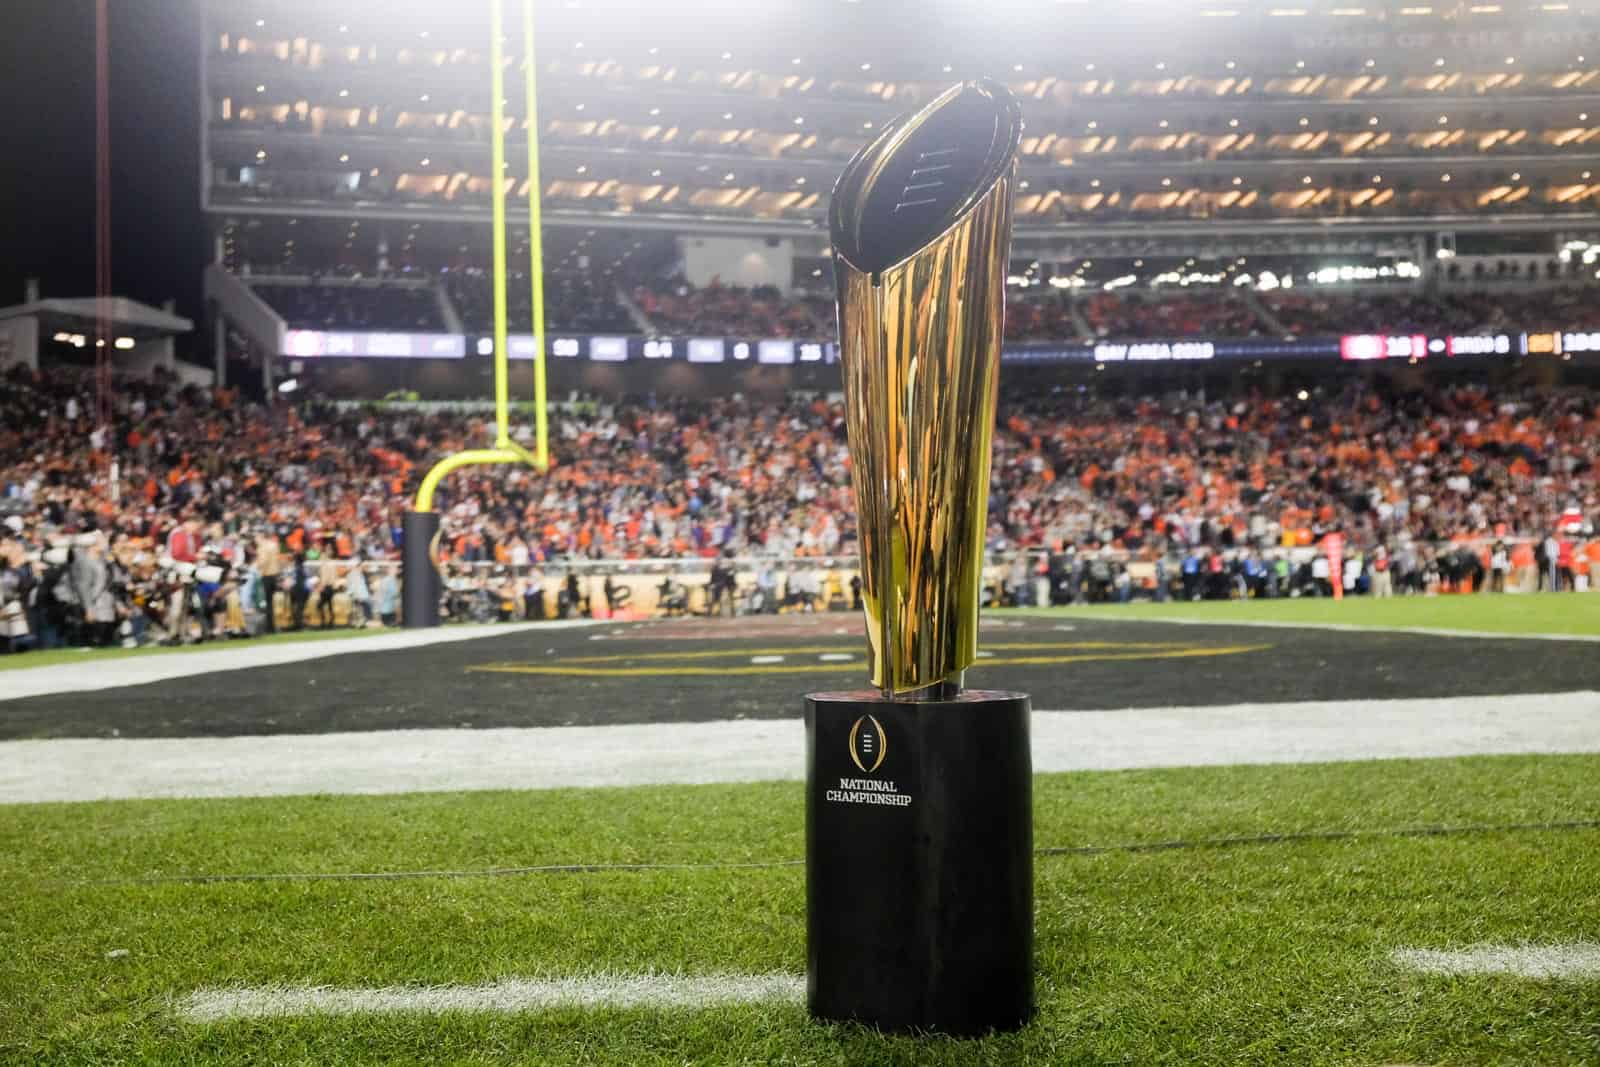 where is ncaa football championship 2020